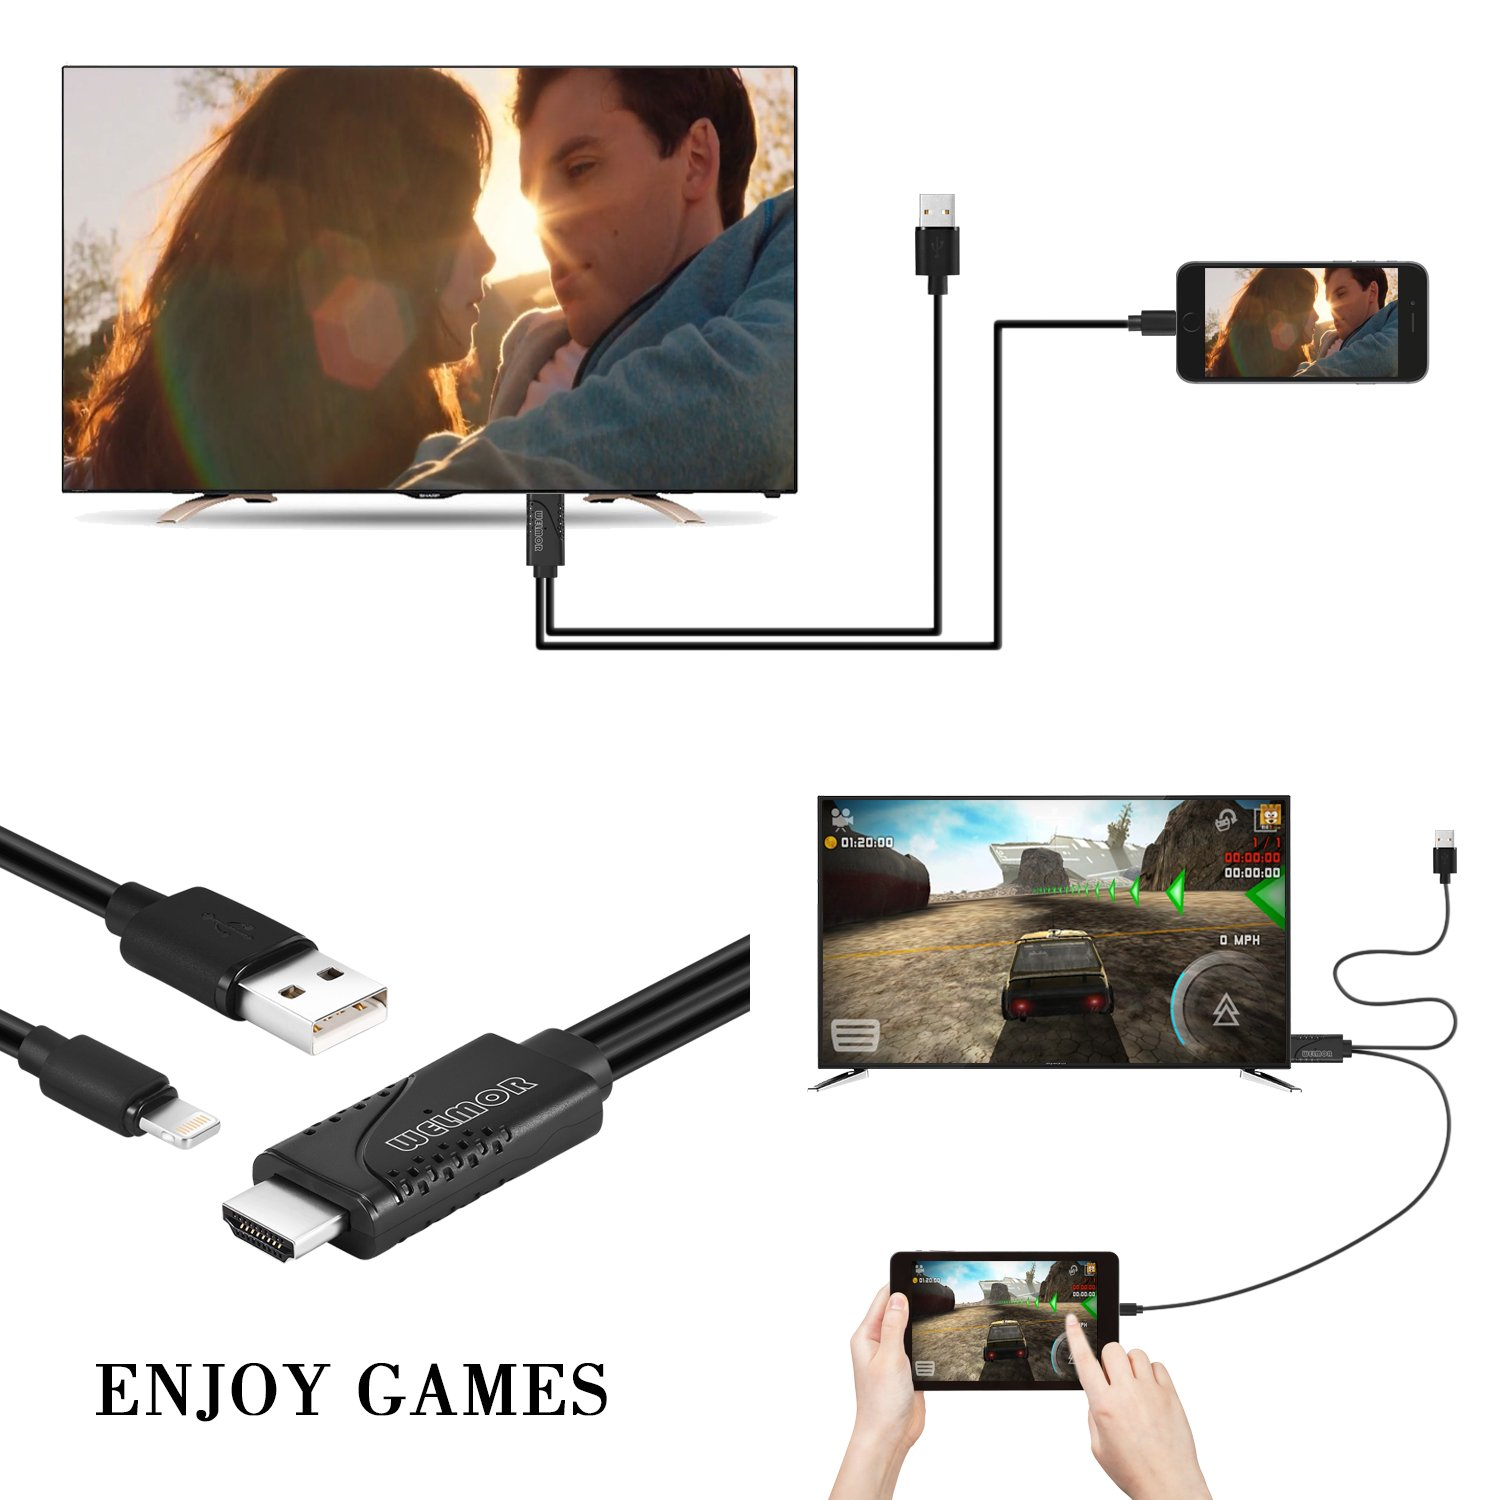 Welmor 6.5ft HDMI Adapter Cable,High Speed HDMI 1080P HDTV Adapter Cord Compatible with iPhone X/8/7/6/plus,iPad,iPod to HDMI Cable ,Plug and Play(Black) by Welmor (Image #4)